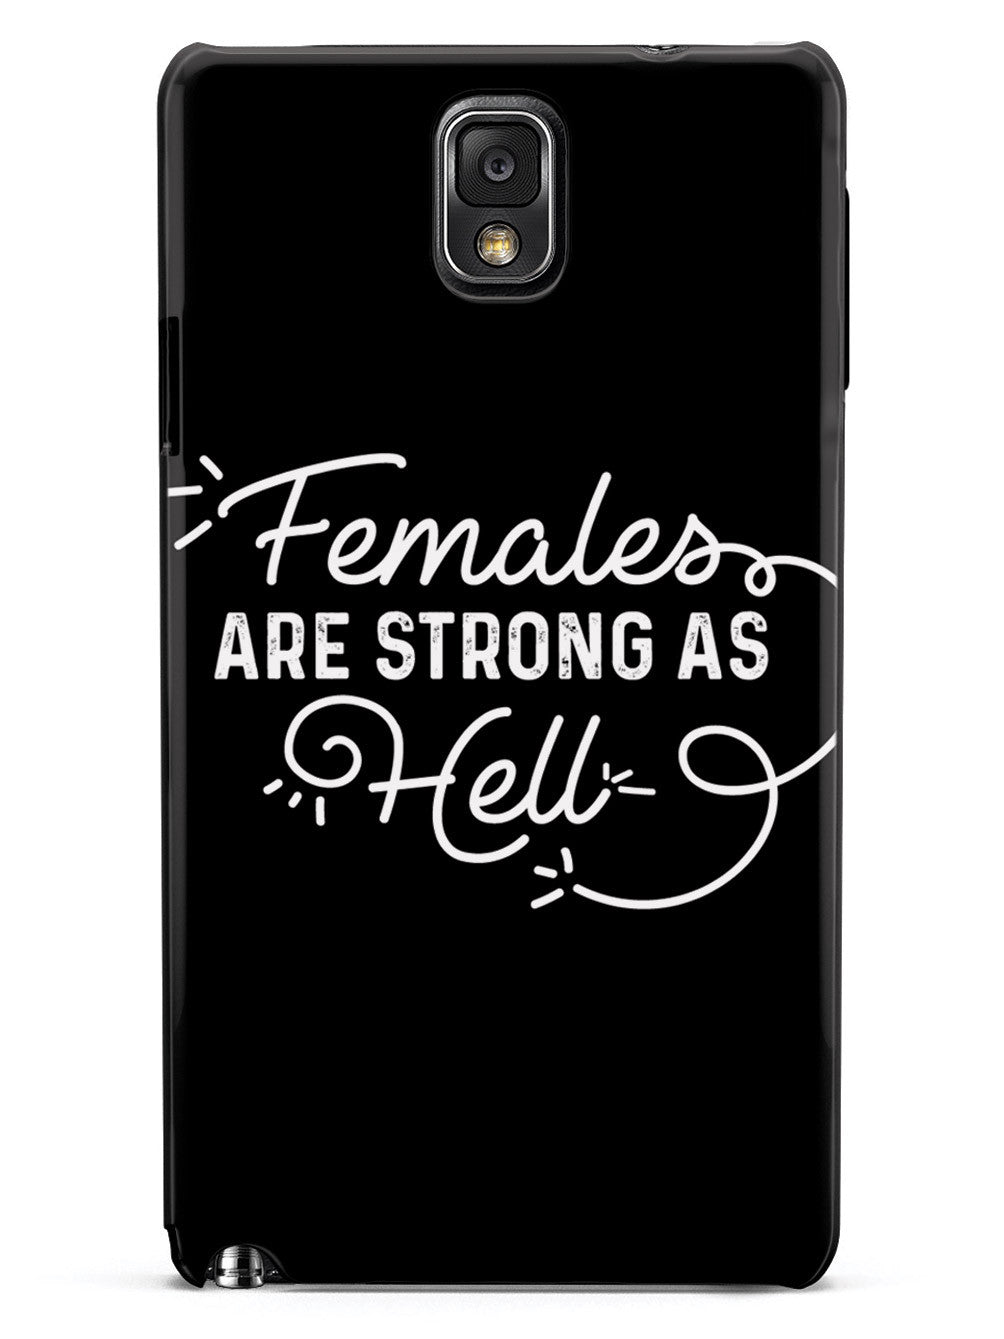 Females Are Strong As Hell - Black Case